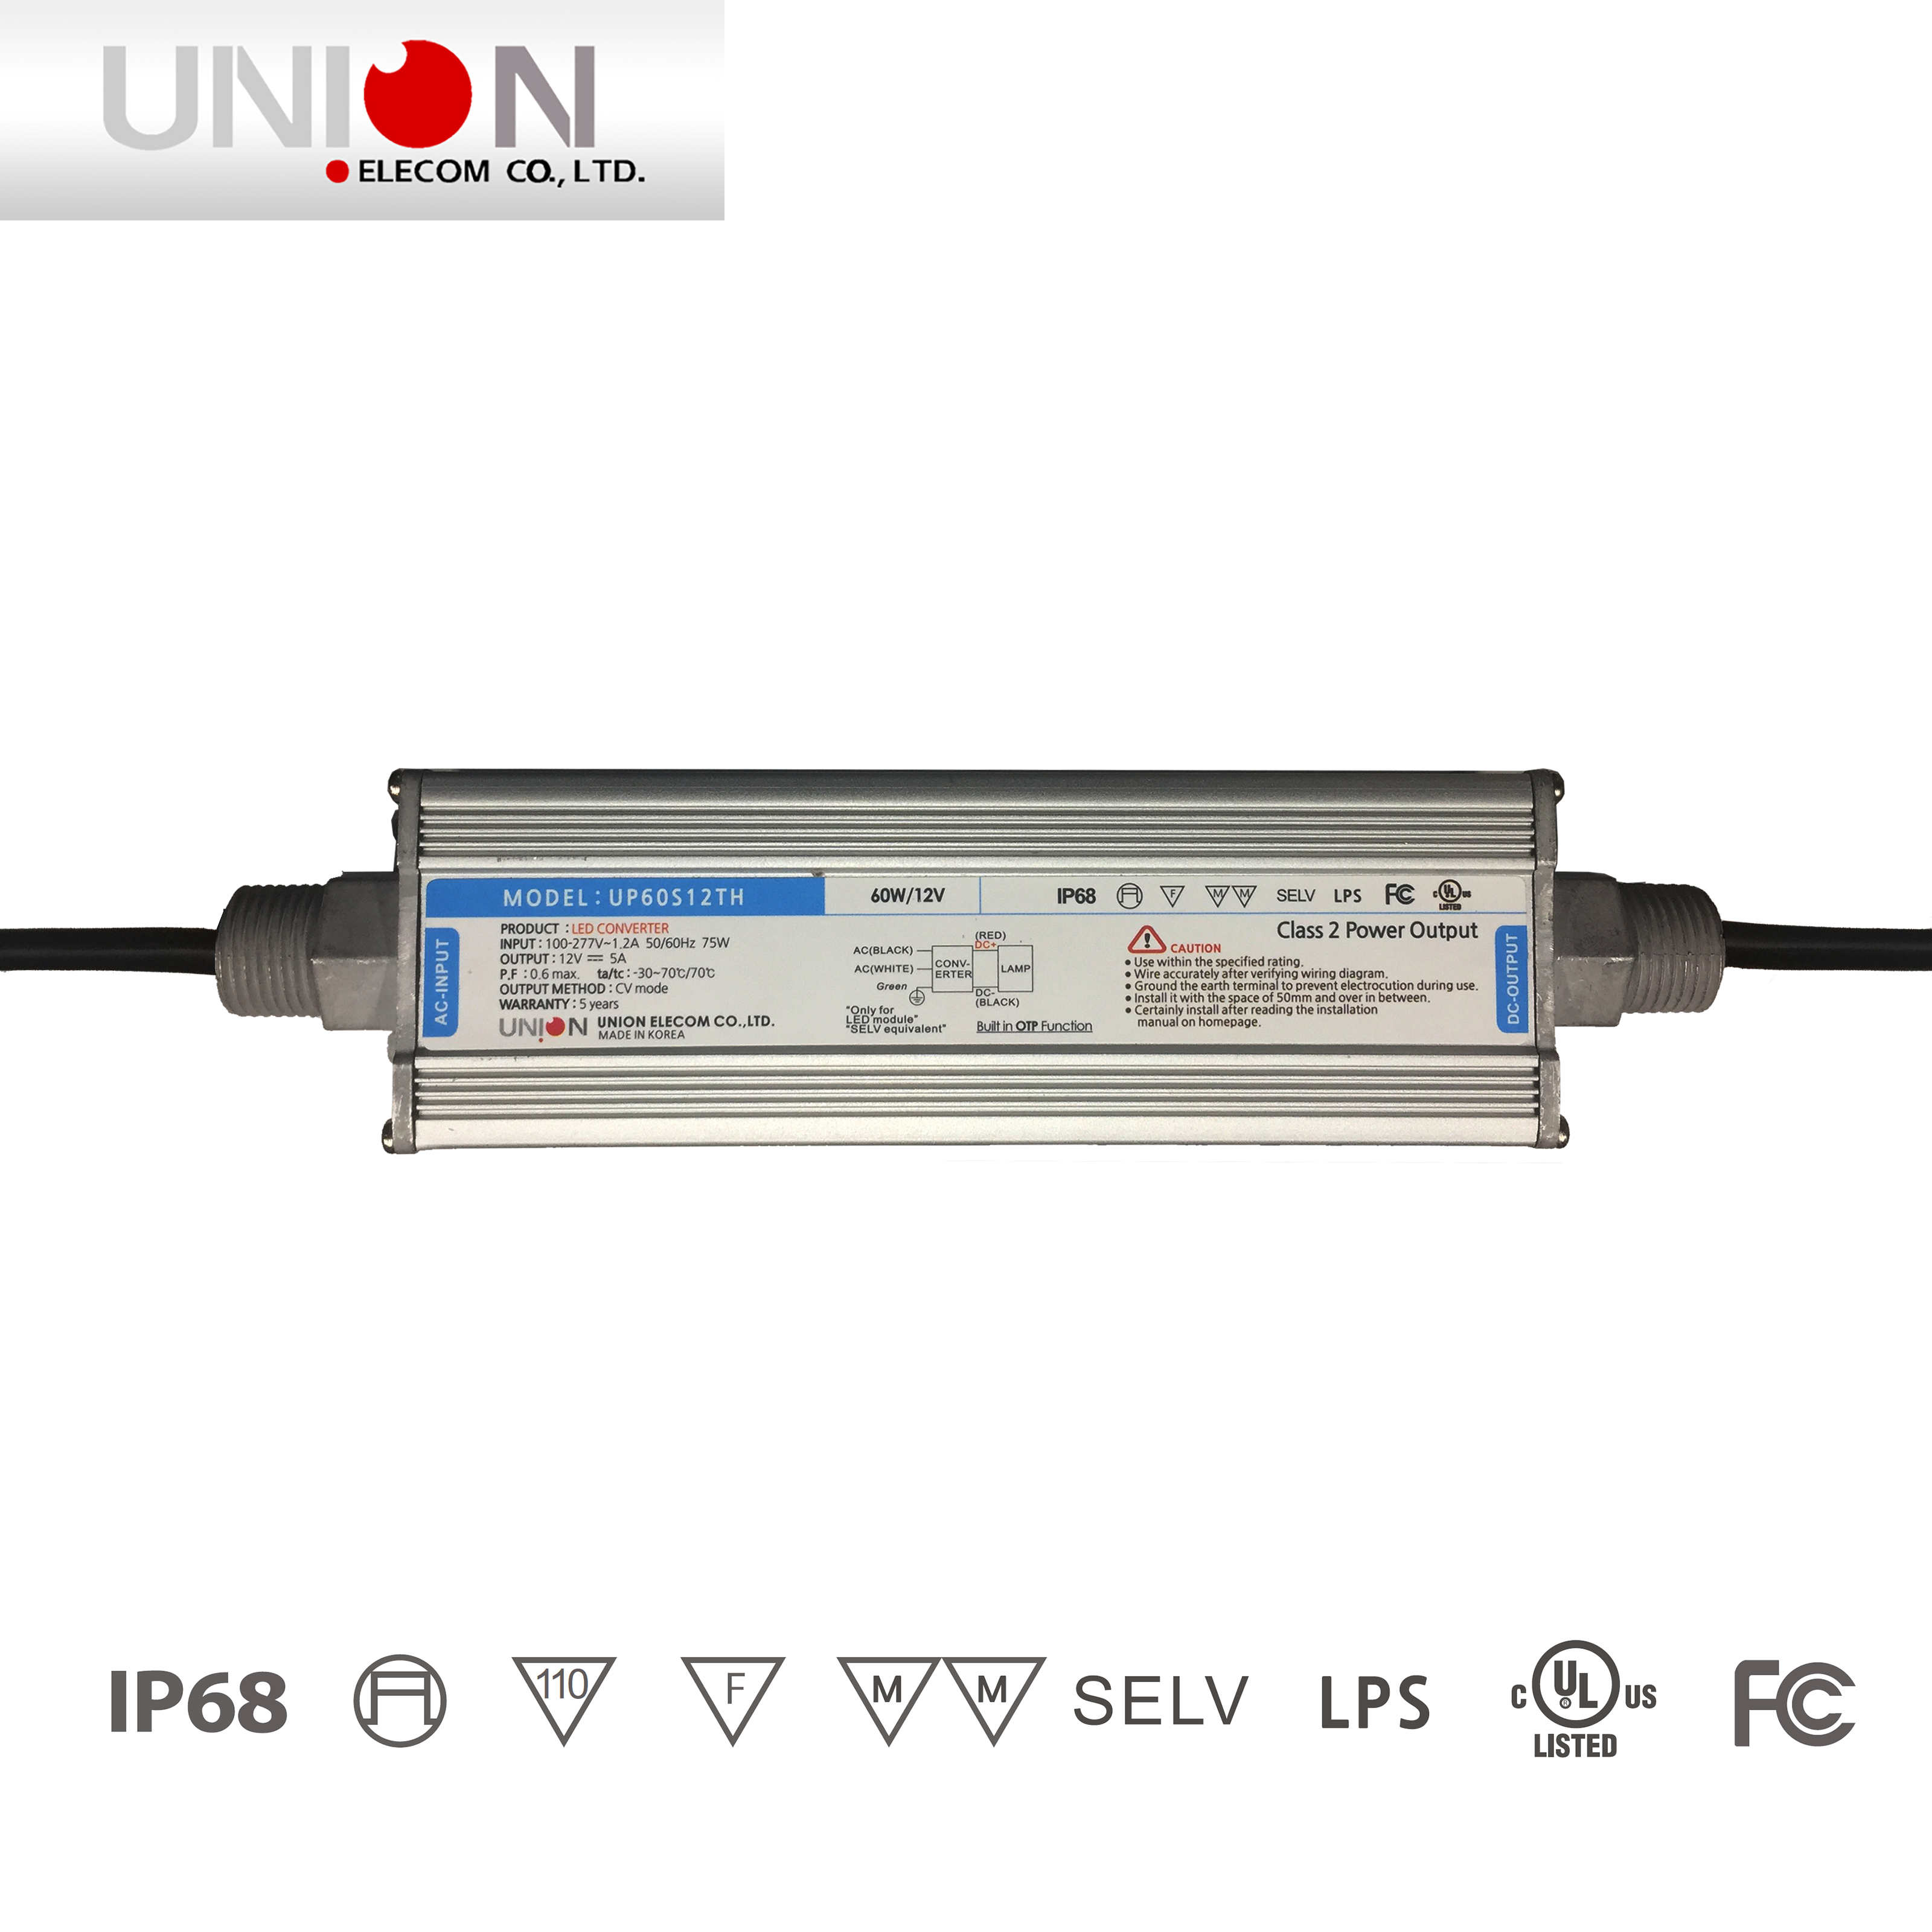 Union 60w Outdoor Led Converter Up60s12th Abitech Module Wiring Diagram